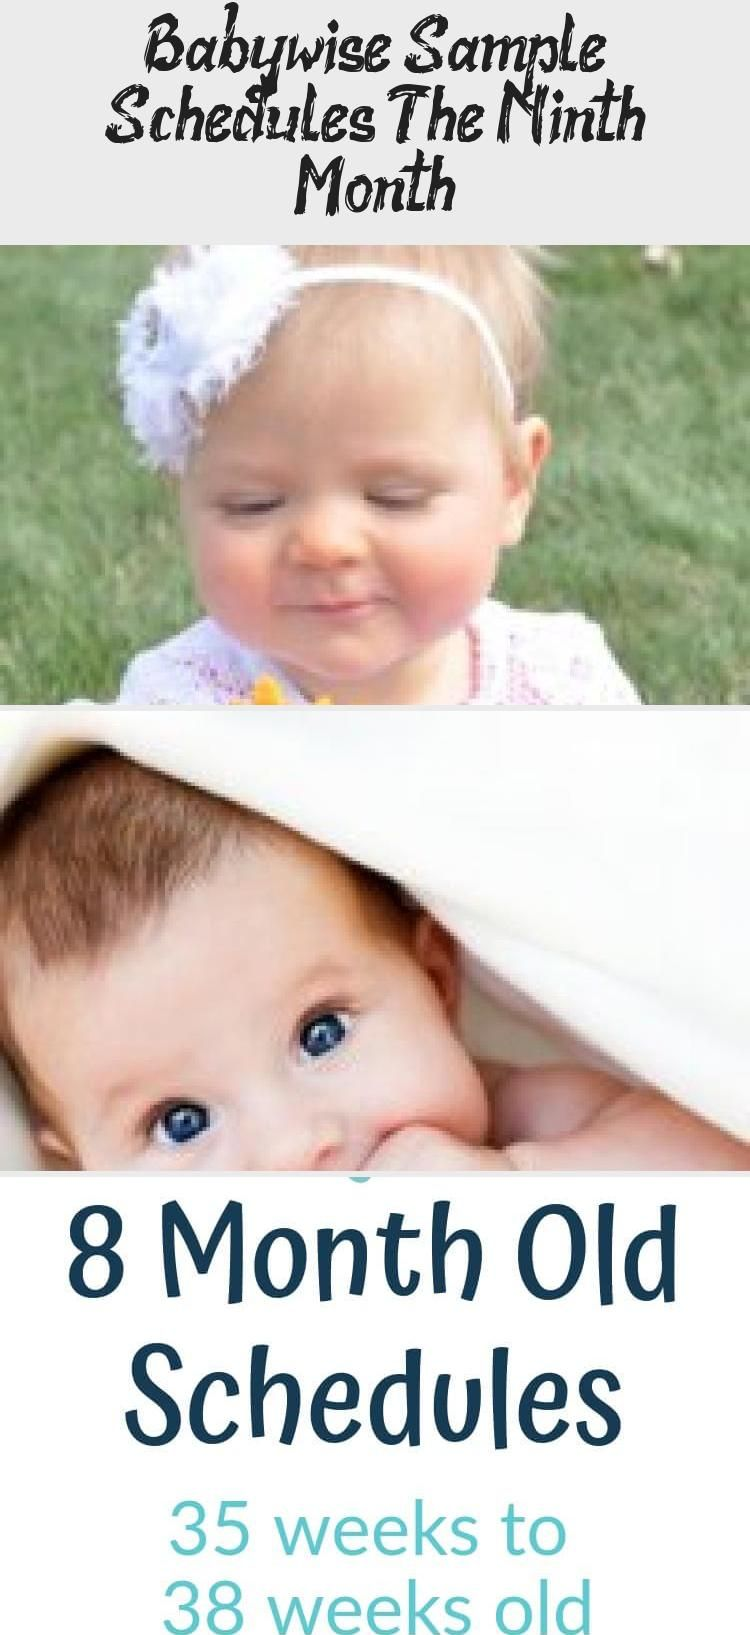 Sample schedules for an 8 month old using the Babywise method. This is the 9th m...